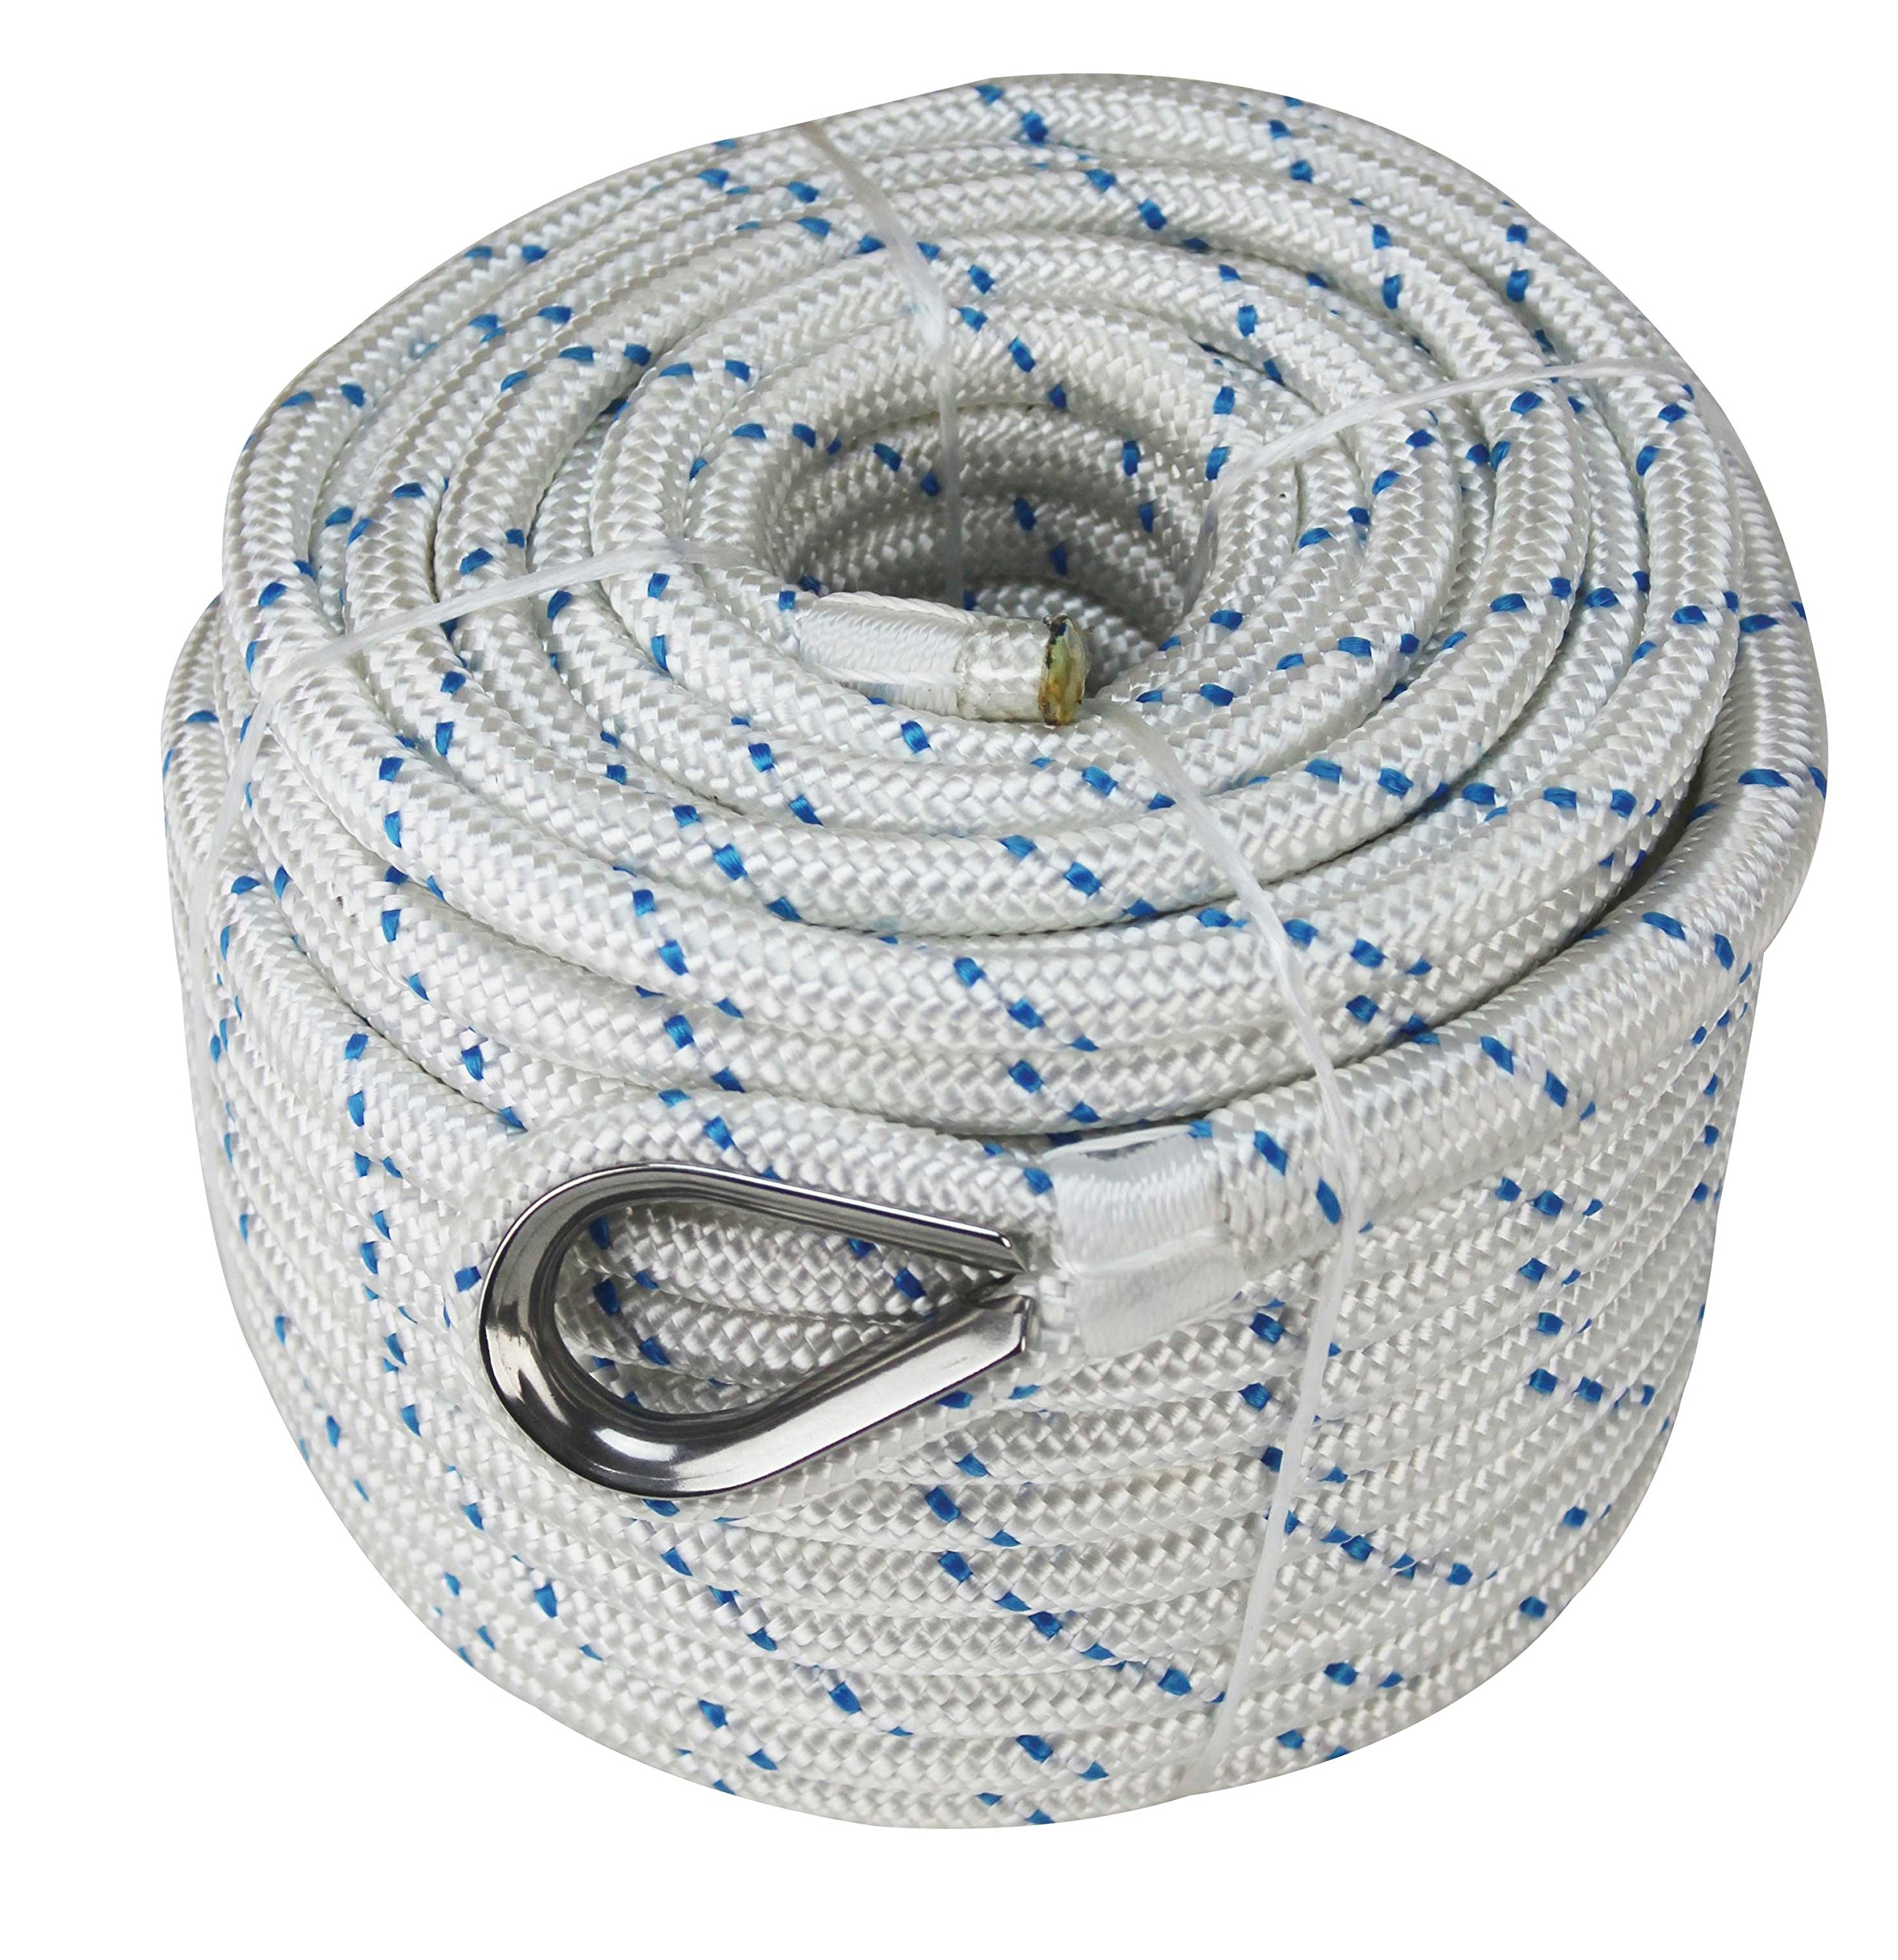 Extreme Max 3006.2547 White w/Blue Tracer 3/4'' x 600' BoatTector Double Braid Nylon Anchor Line with Thimble